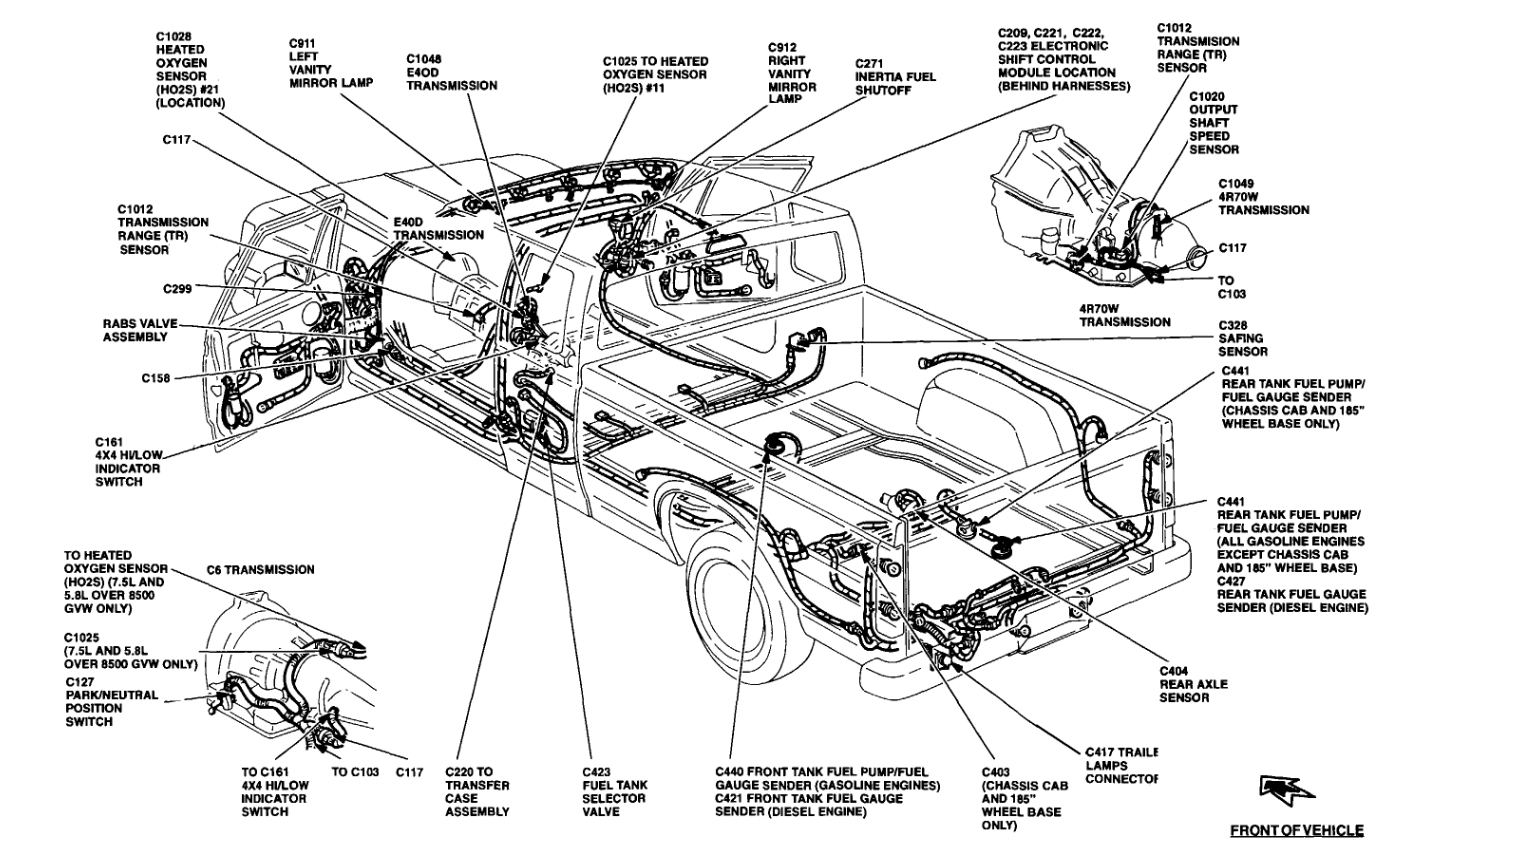 Ford Ranger Exhaust System Diagram